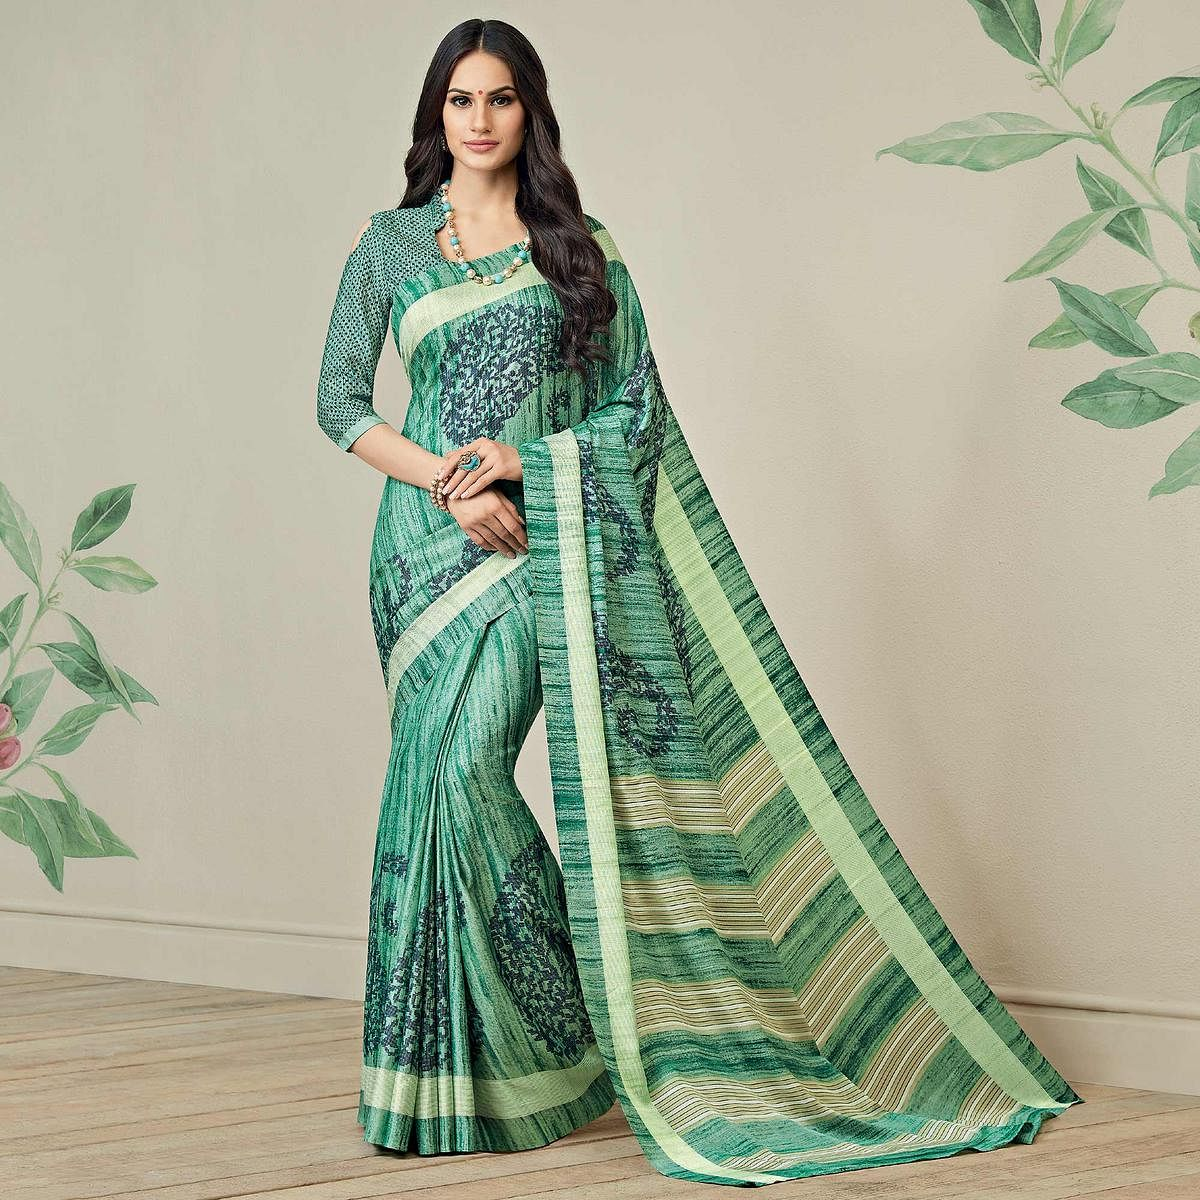 Classy Green Colored Casual Printed Jute Art Silk Saree